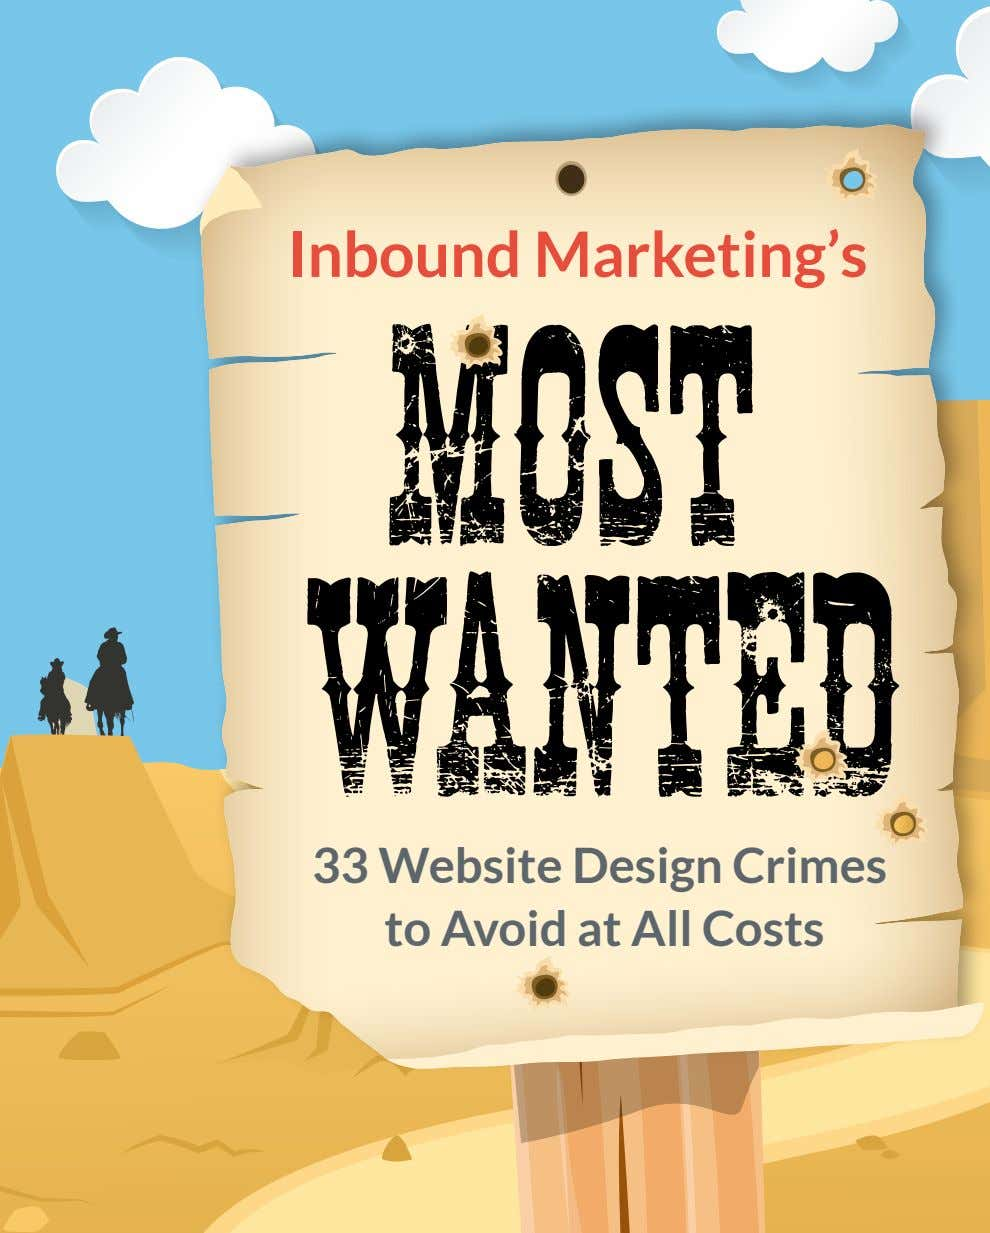 Inbound Marketing's MOST WANTED 33 Website Design Crimes to Avoid at All Costs